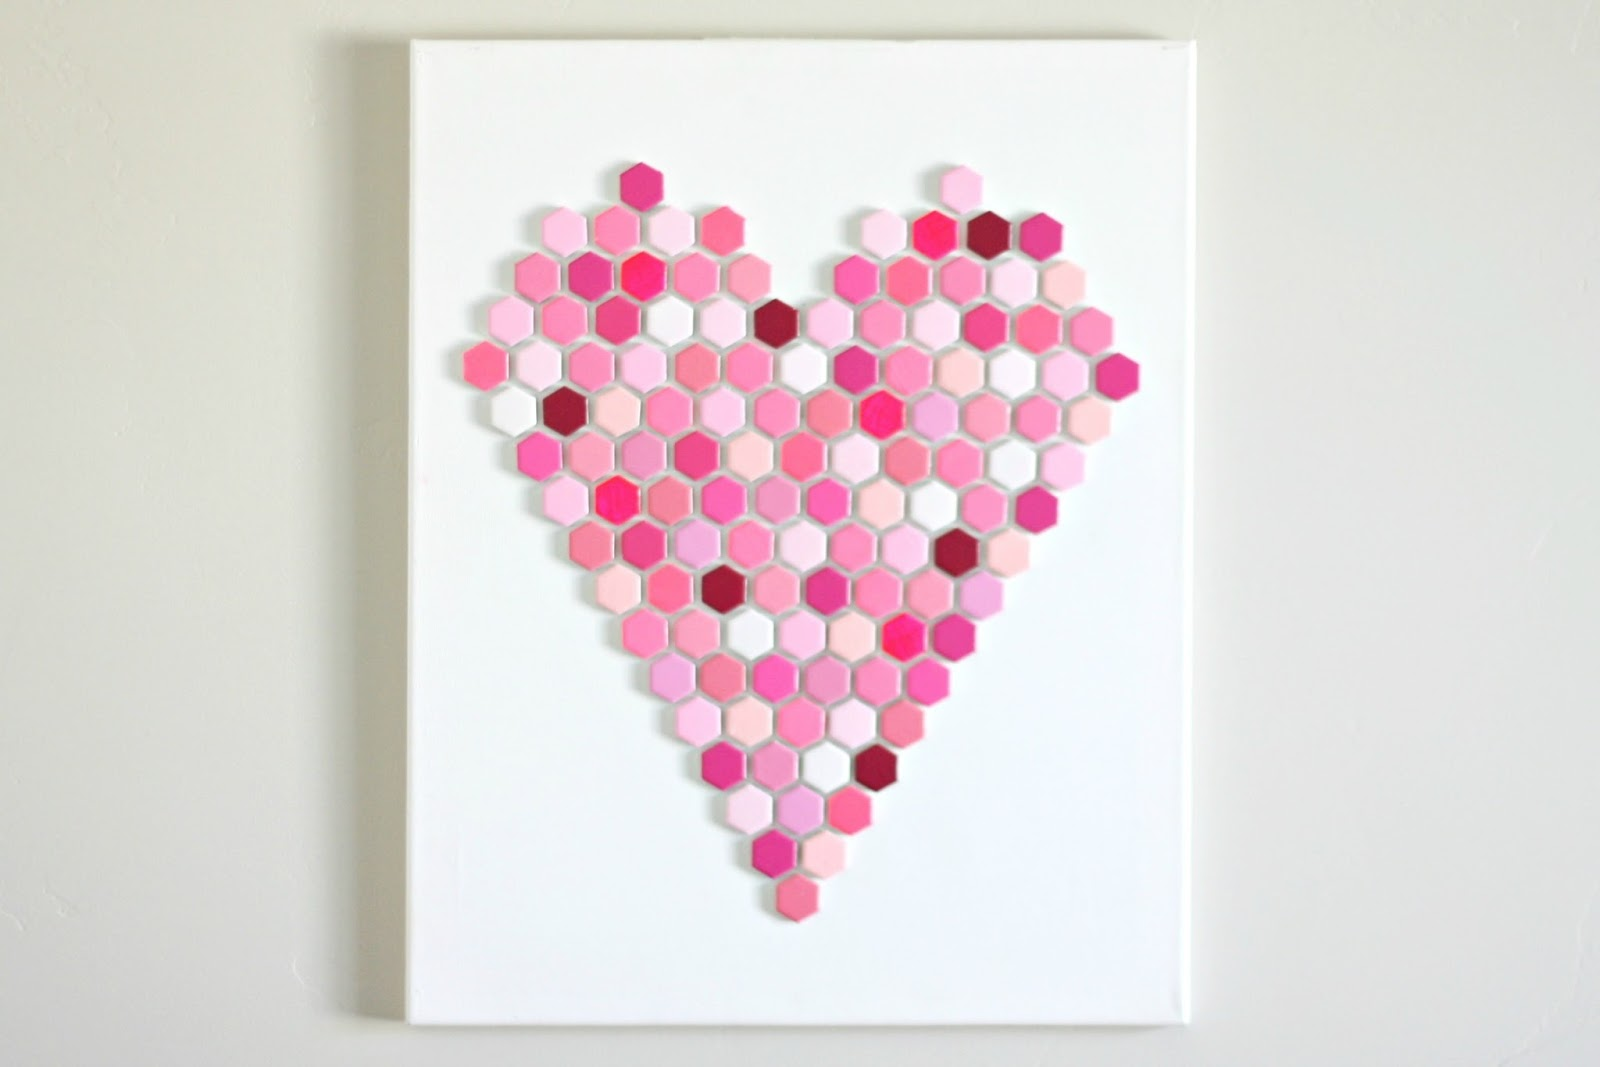 diy hexagon tile heart art 1